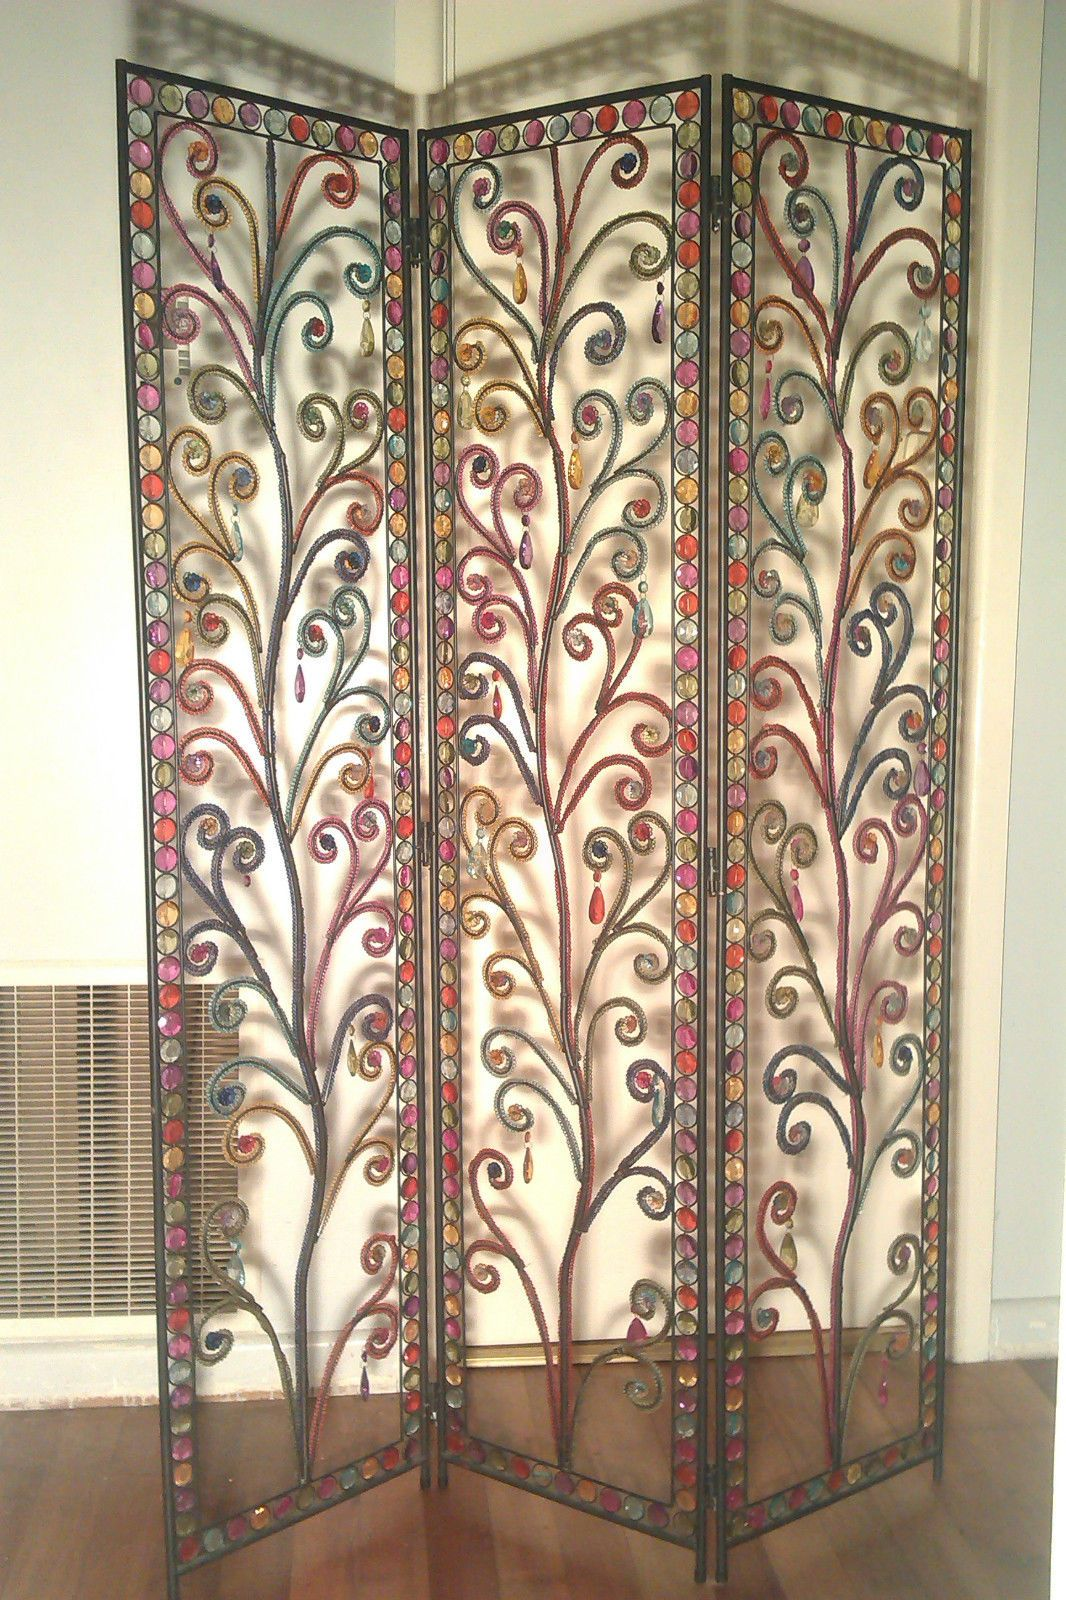 Colourful Ishka Decorative Screen Room Divider Beaded Hand Crafted Pretty Room Screen Divider Purchased From Ishka Handc Decorative Screens Room Divider Decor